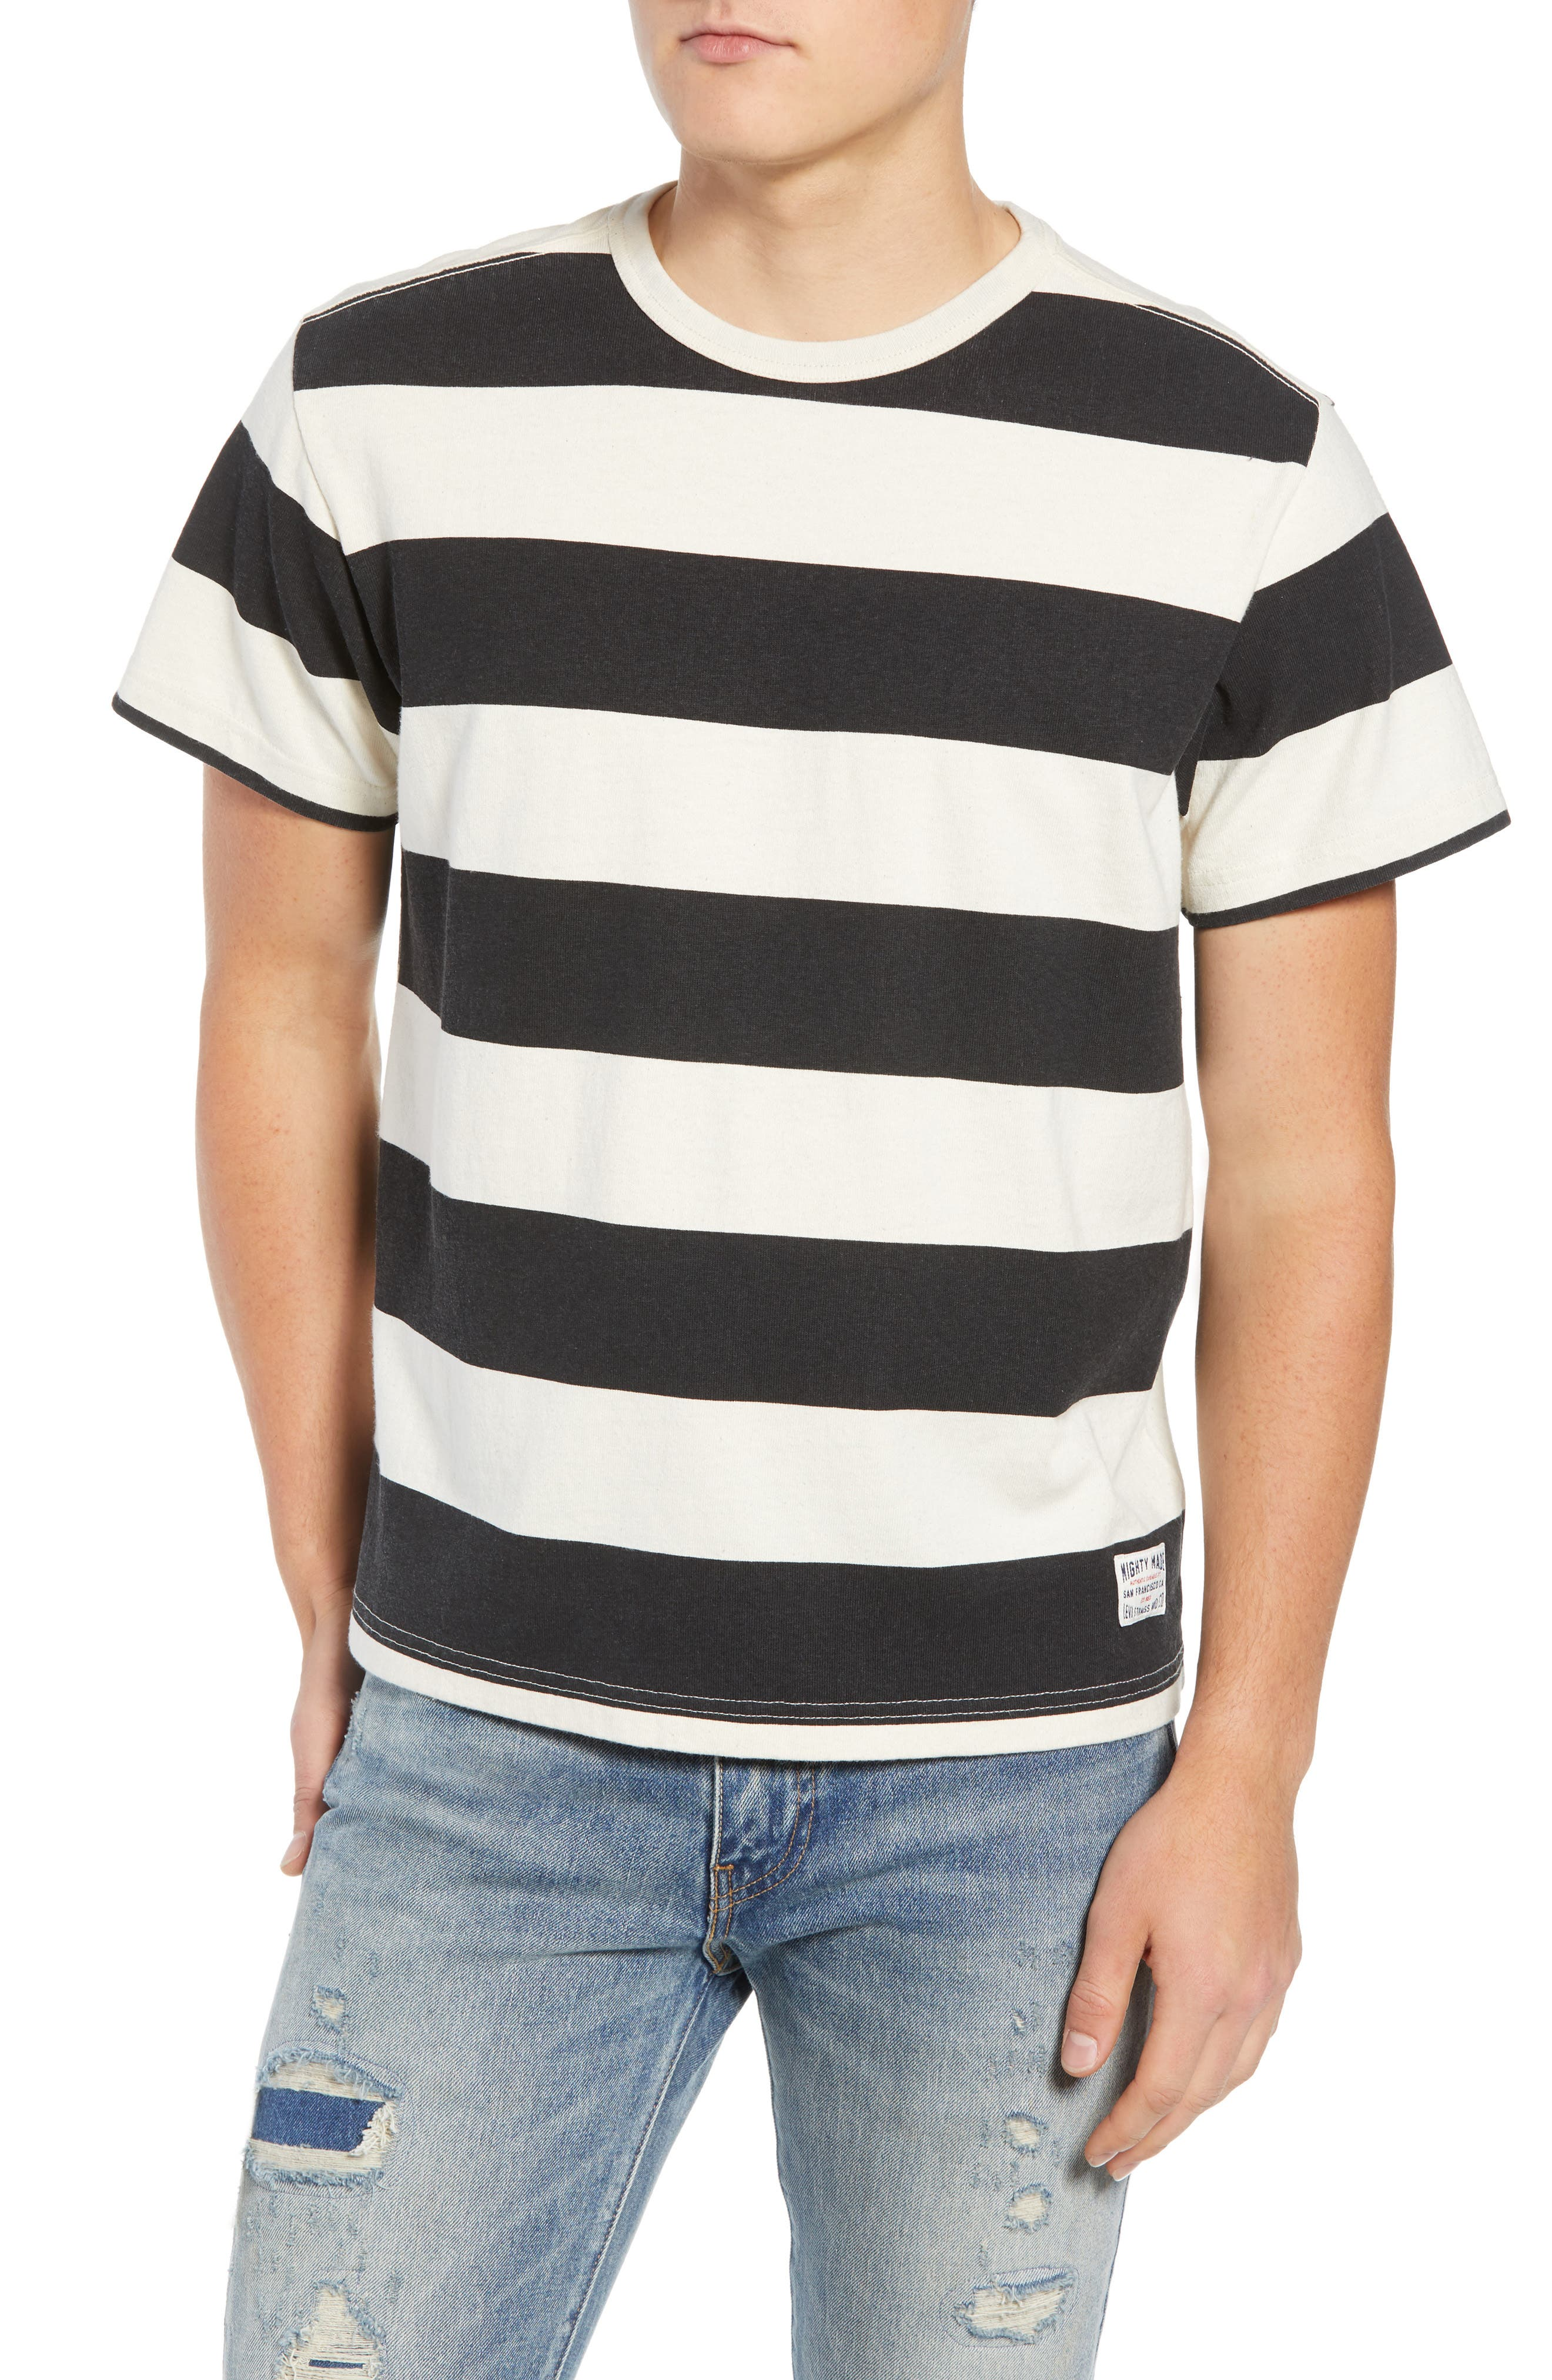 Mighty II T-Shirt,                         Main,                         color, 240